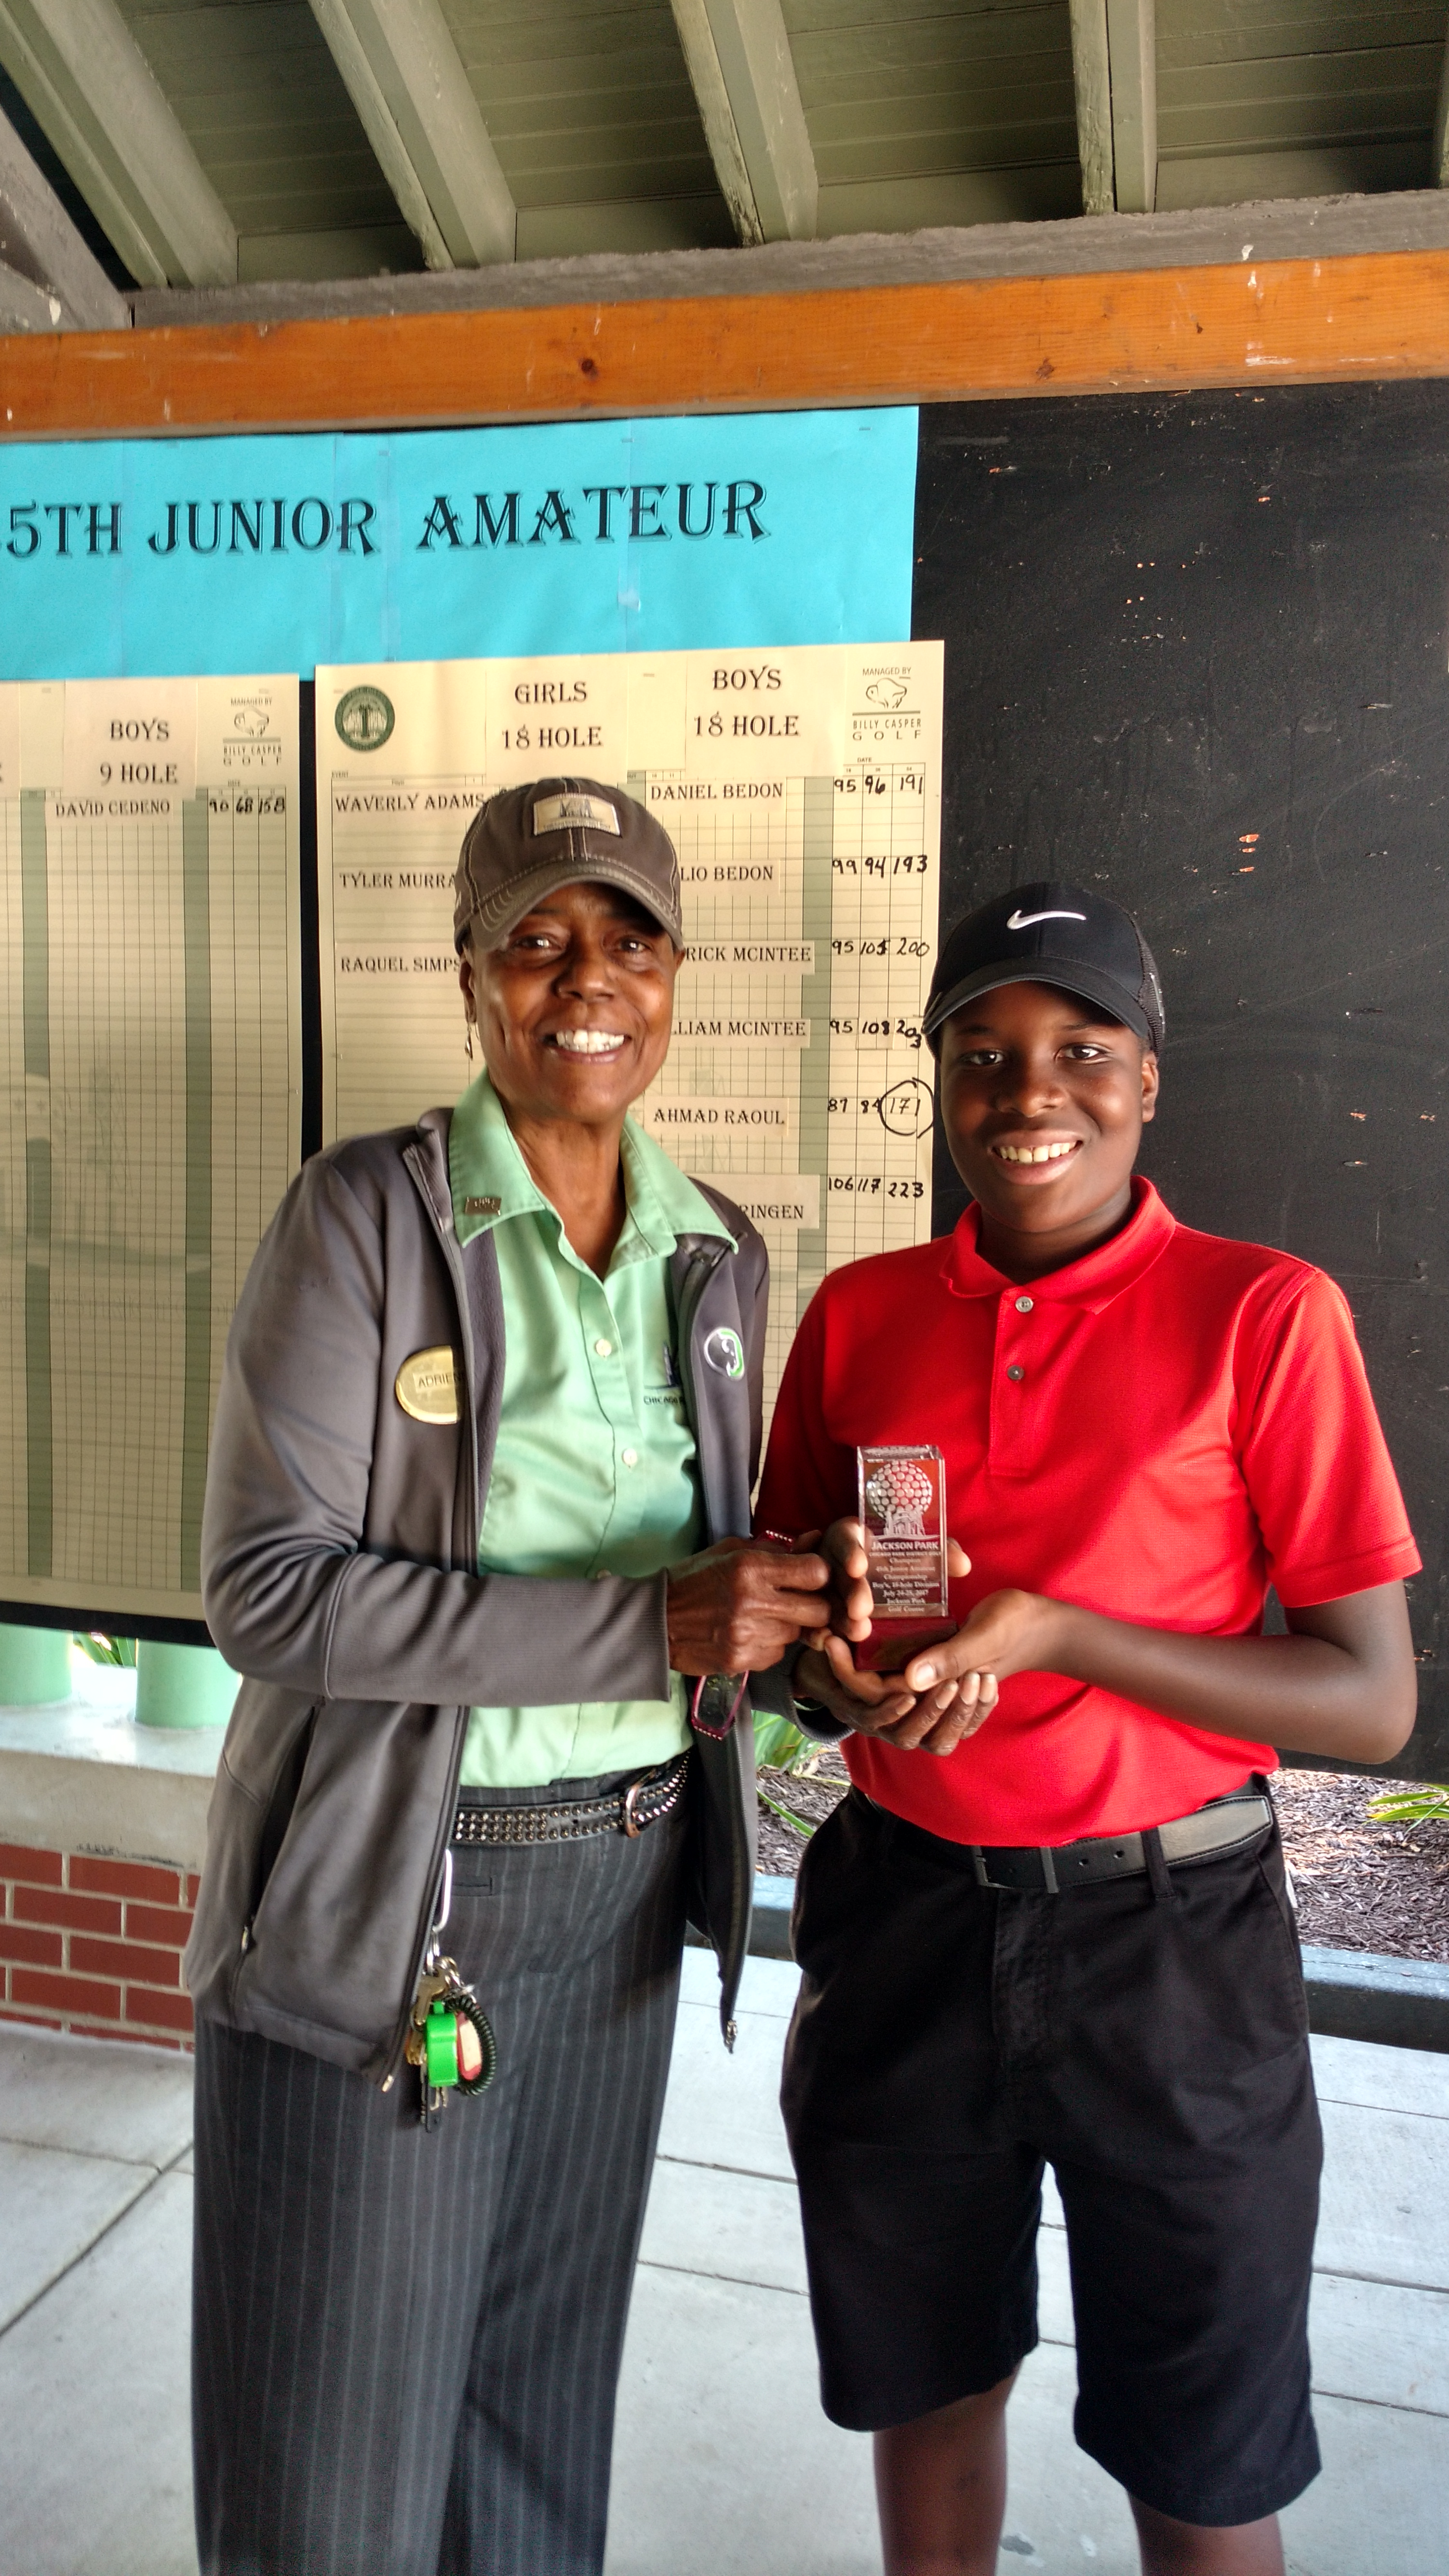 45th Junior Amateur Boys 18 Hole Winner Ahmad Raoul